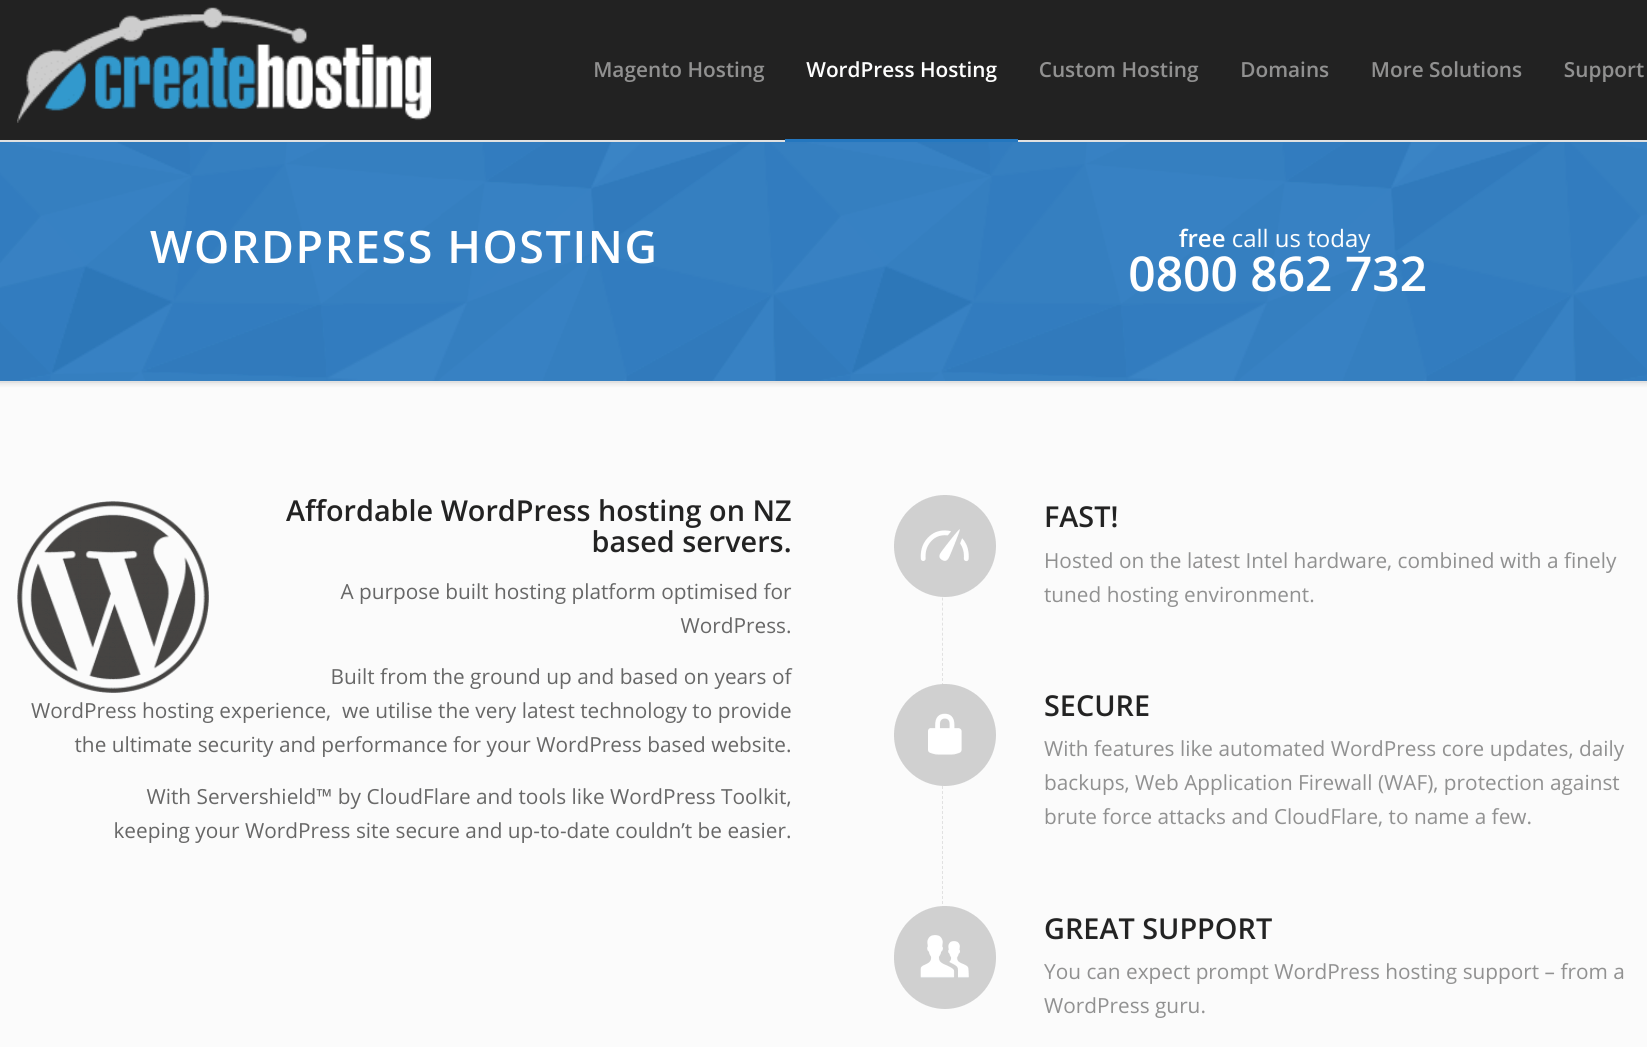 createhosting features